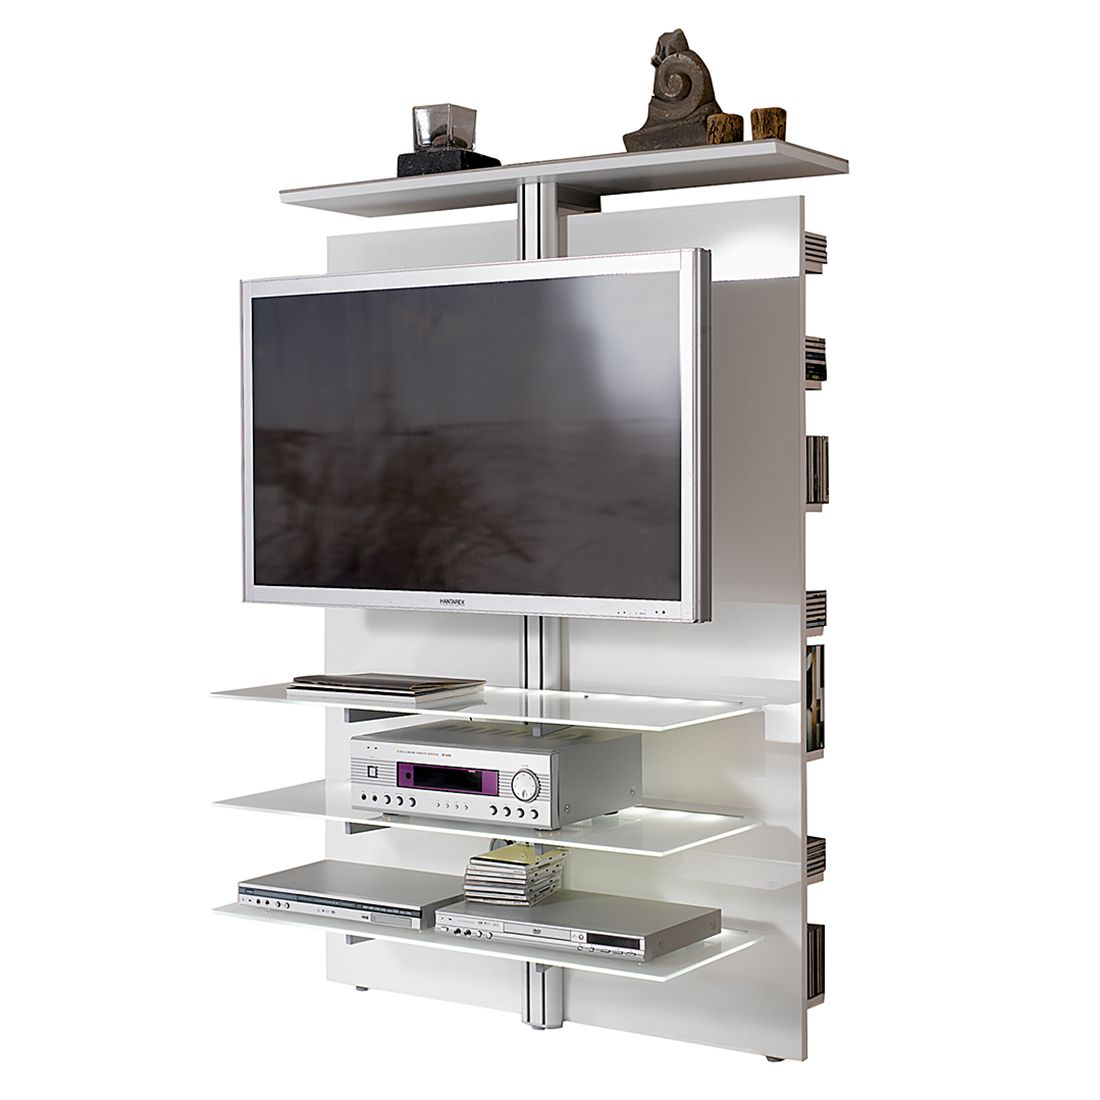 tv wand slc lcd 1900 hochglanz wei mit wei glas ohne beleuchtung. Black Bedroom Furniture Sets. Home Design Ideas